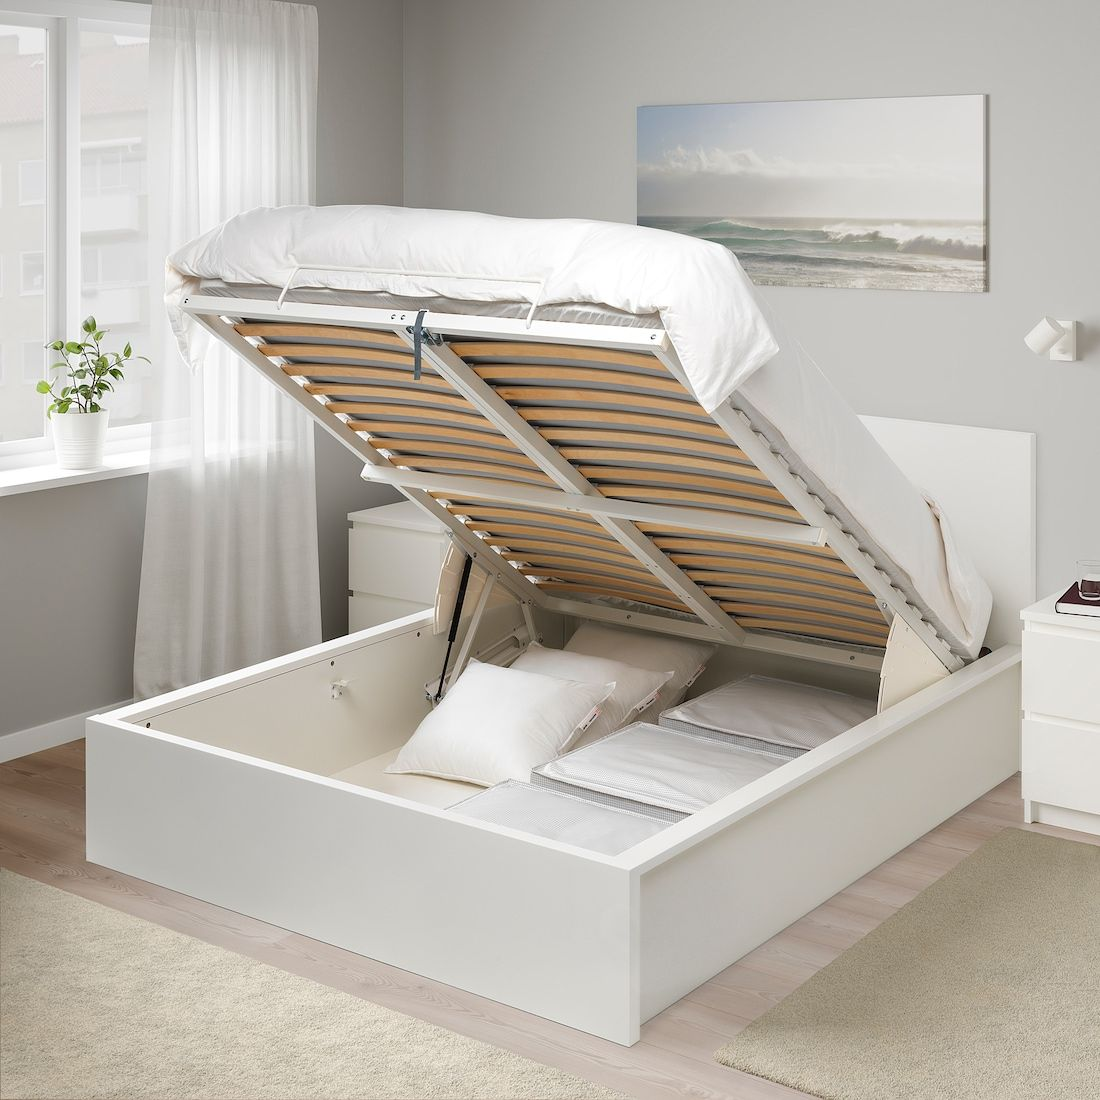 Malm Storage Bed White Queen Ikea In 2020 Bed Frame With Storage Ottoman Bed Storage Bed